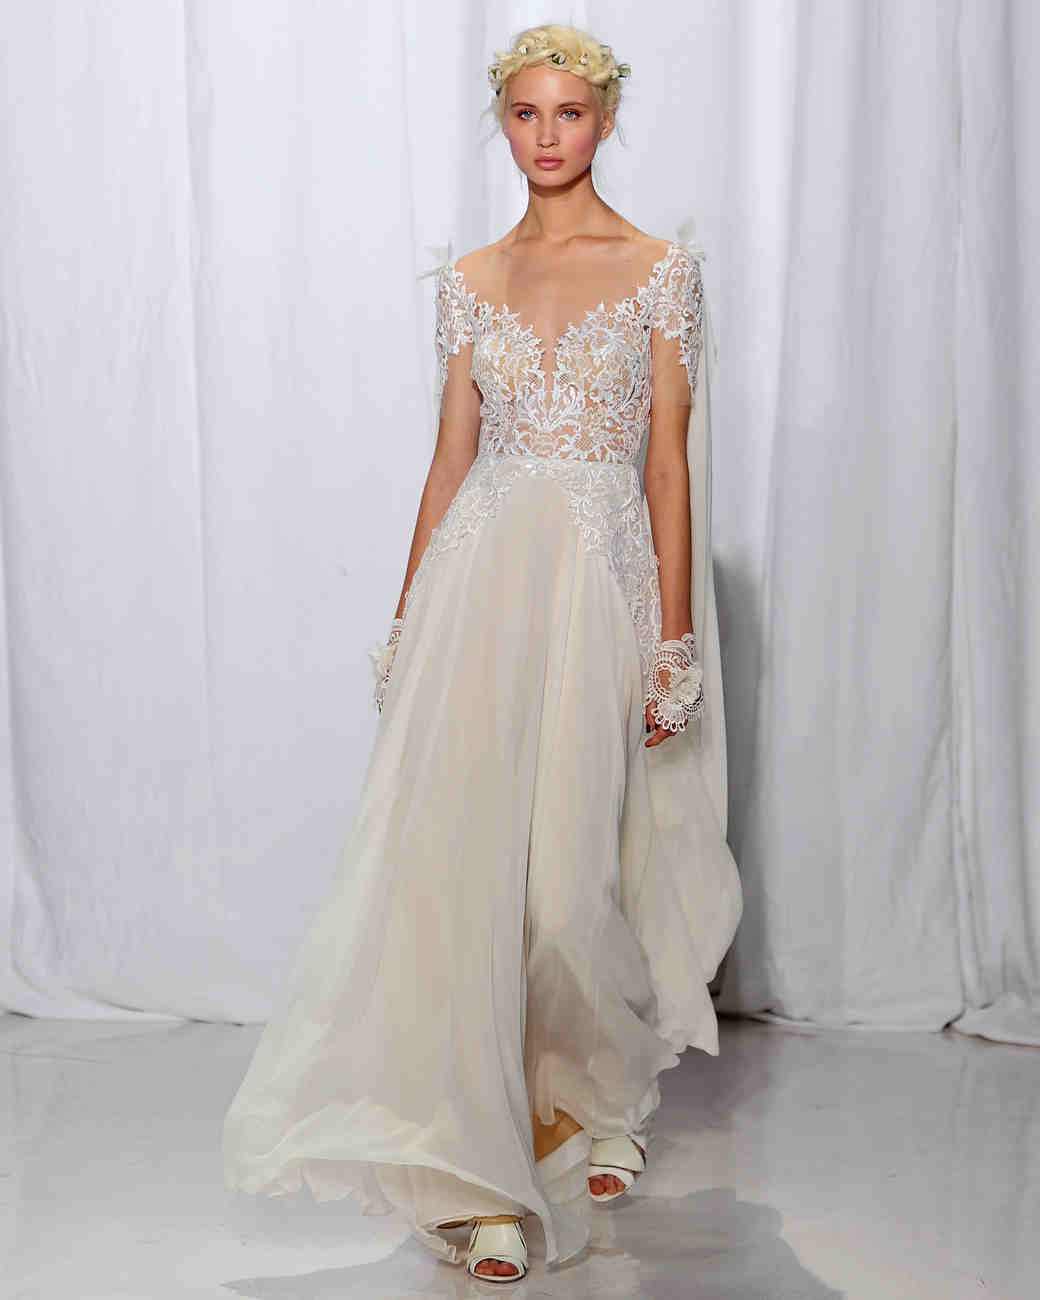 Reem acra fall 2017 wedding dress collection martha stewart weddings reem acra fall 2017 wedding dress collection junglespirit